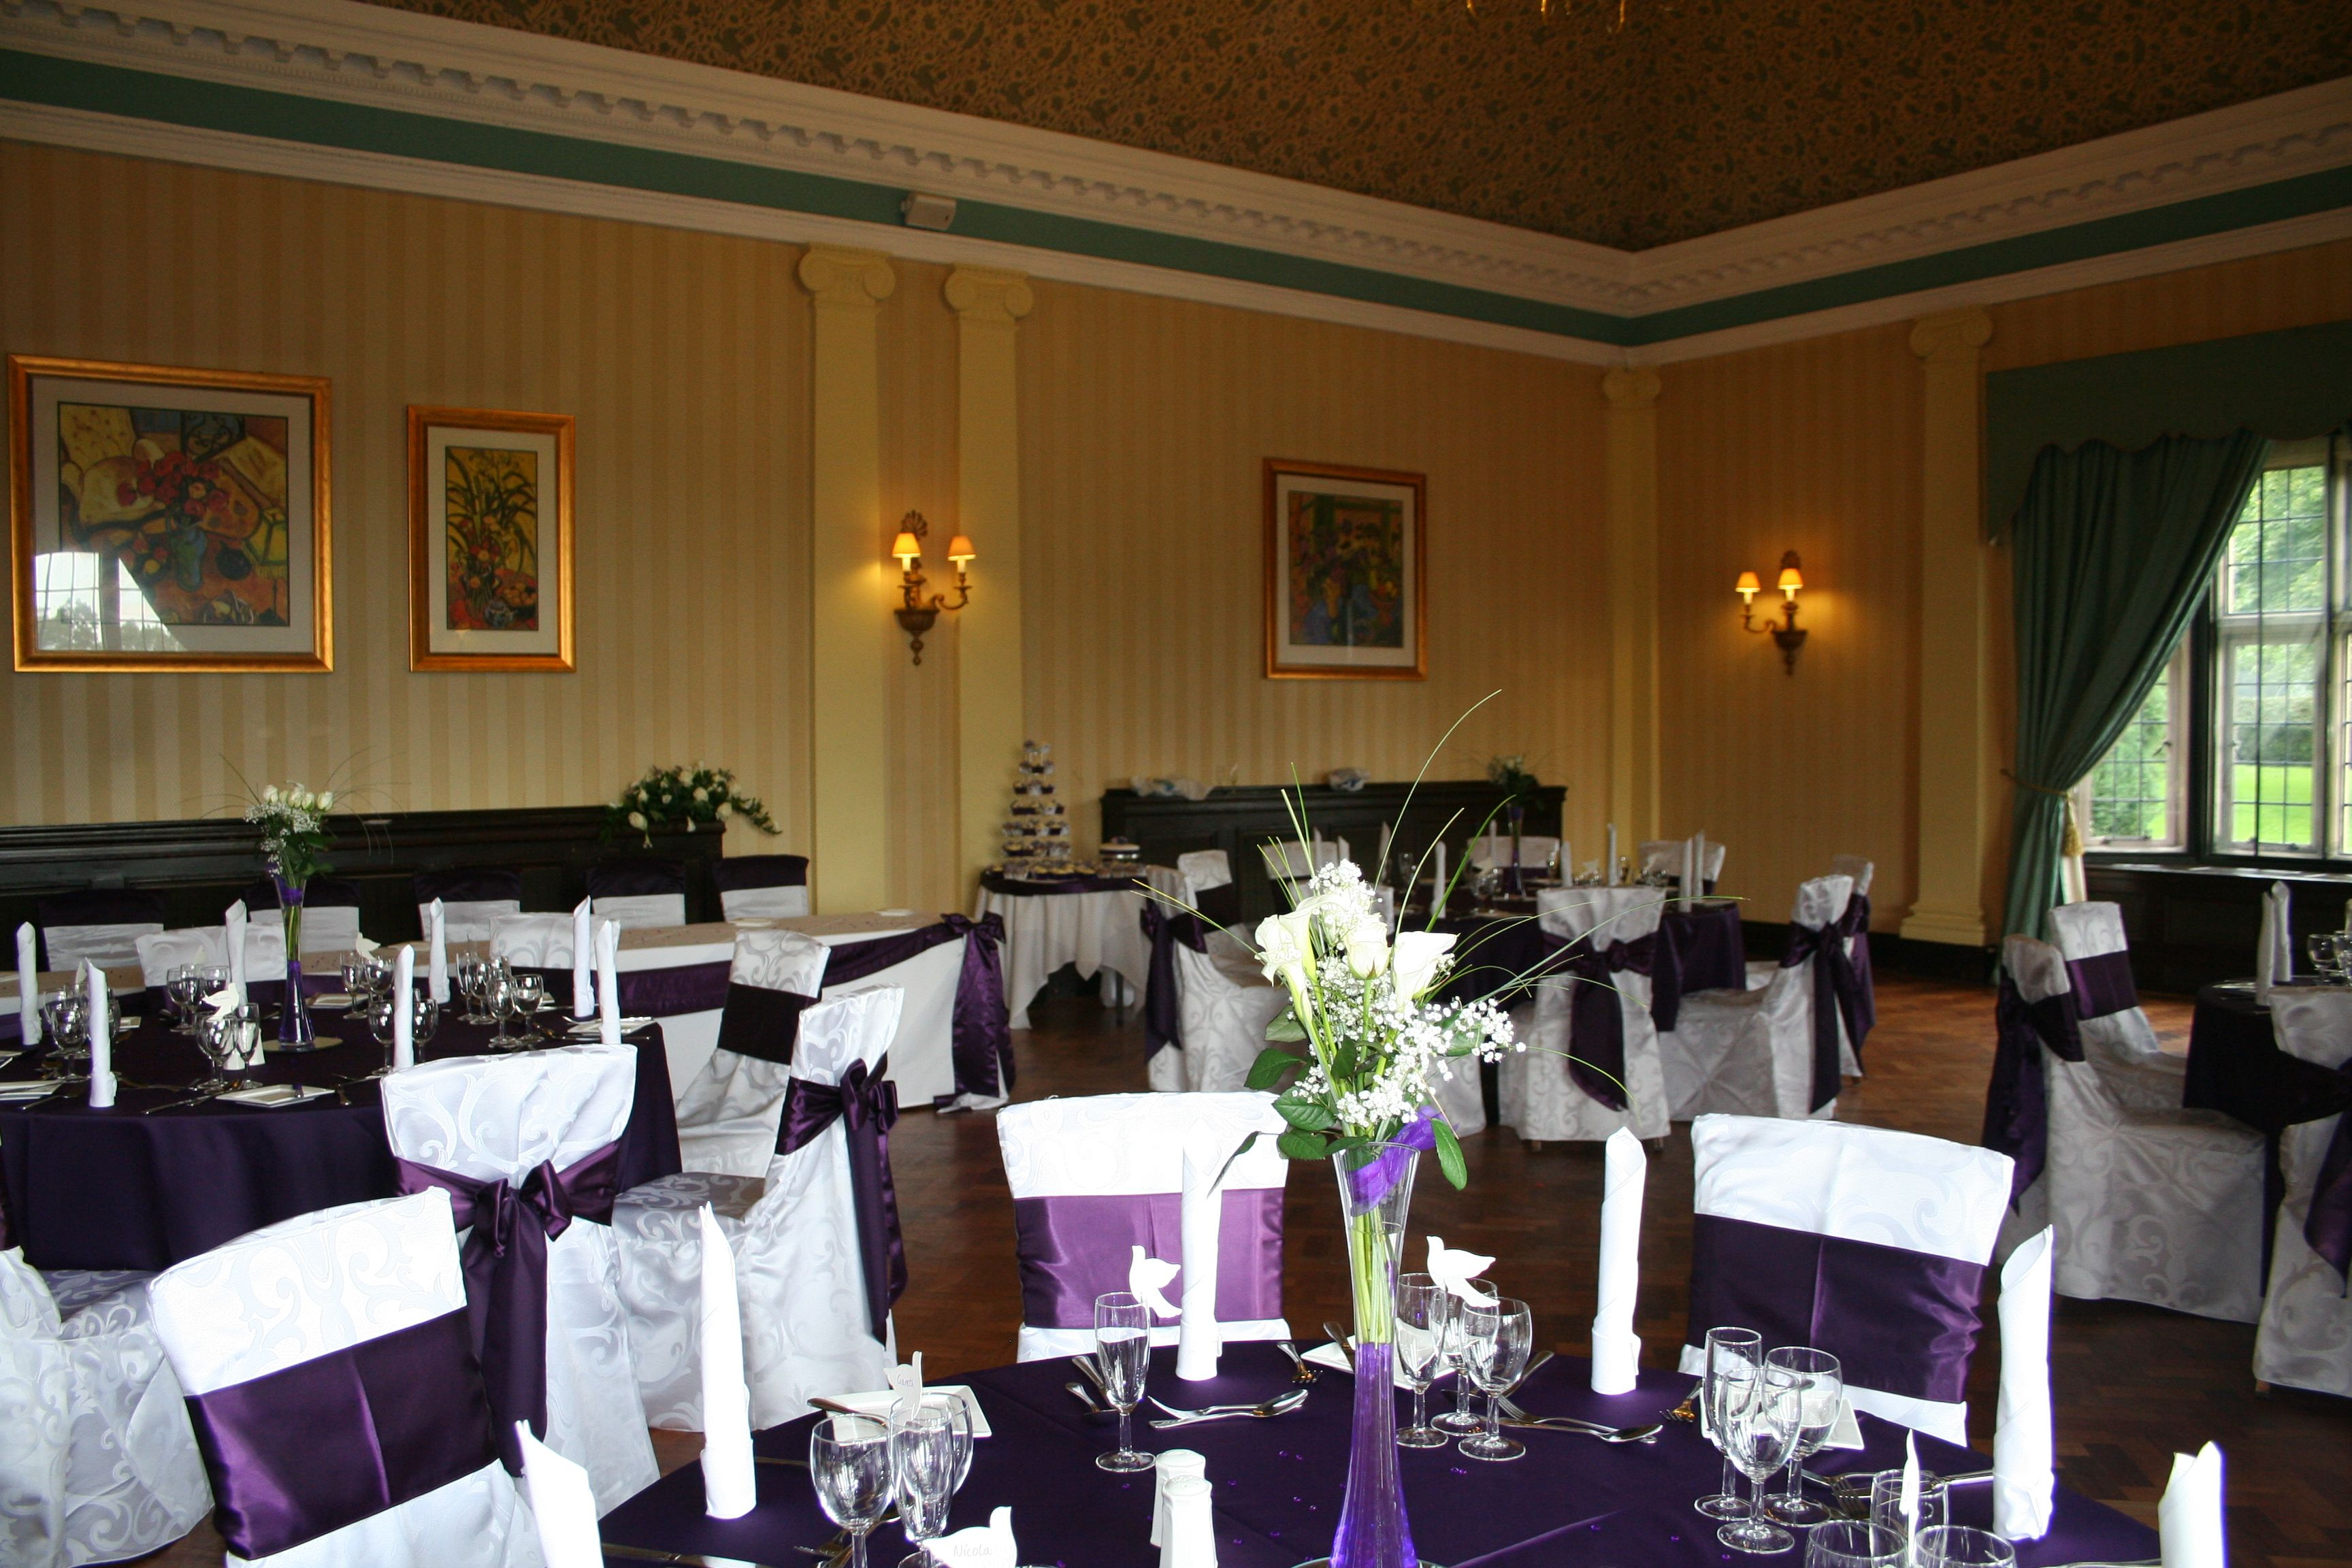 chair cover rental charlotte nc lounge walmart dark purple table linen with white damask covers and